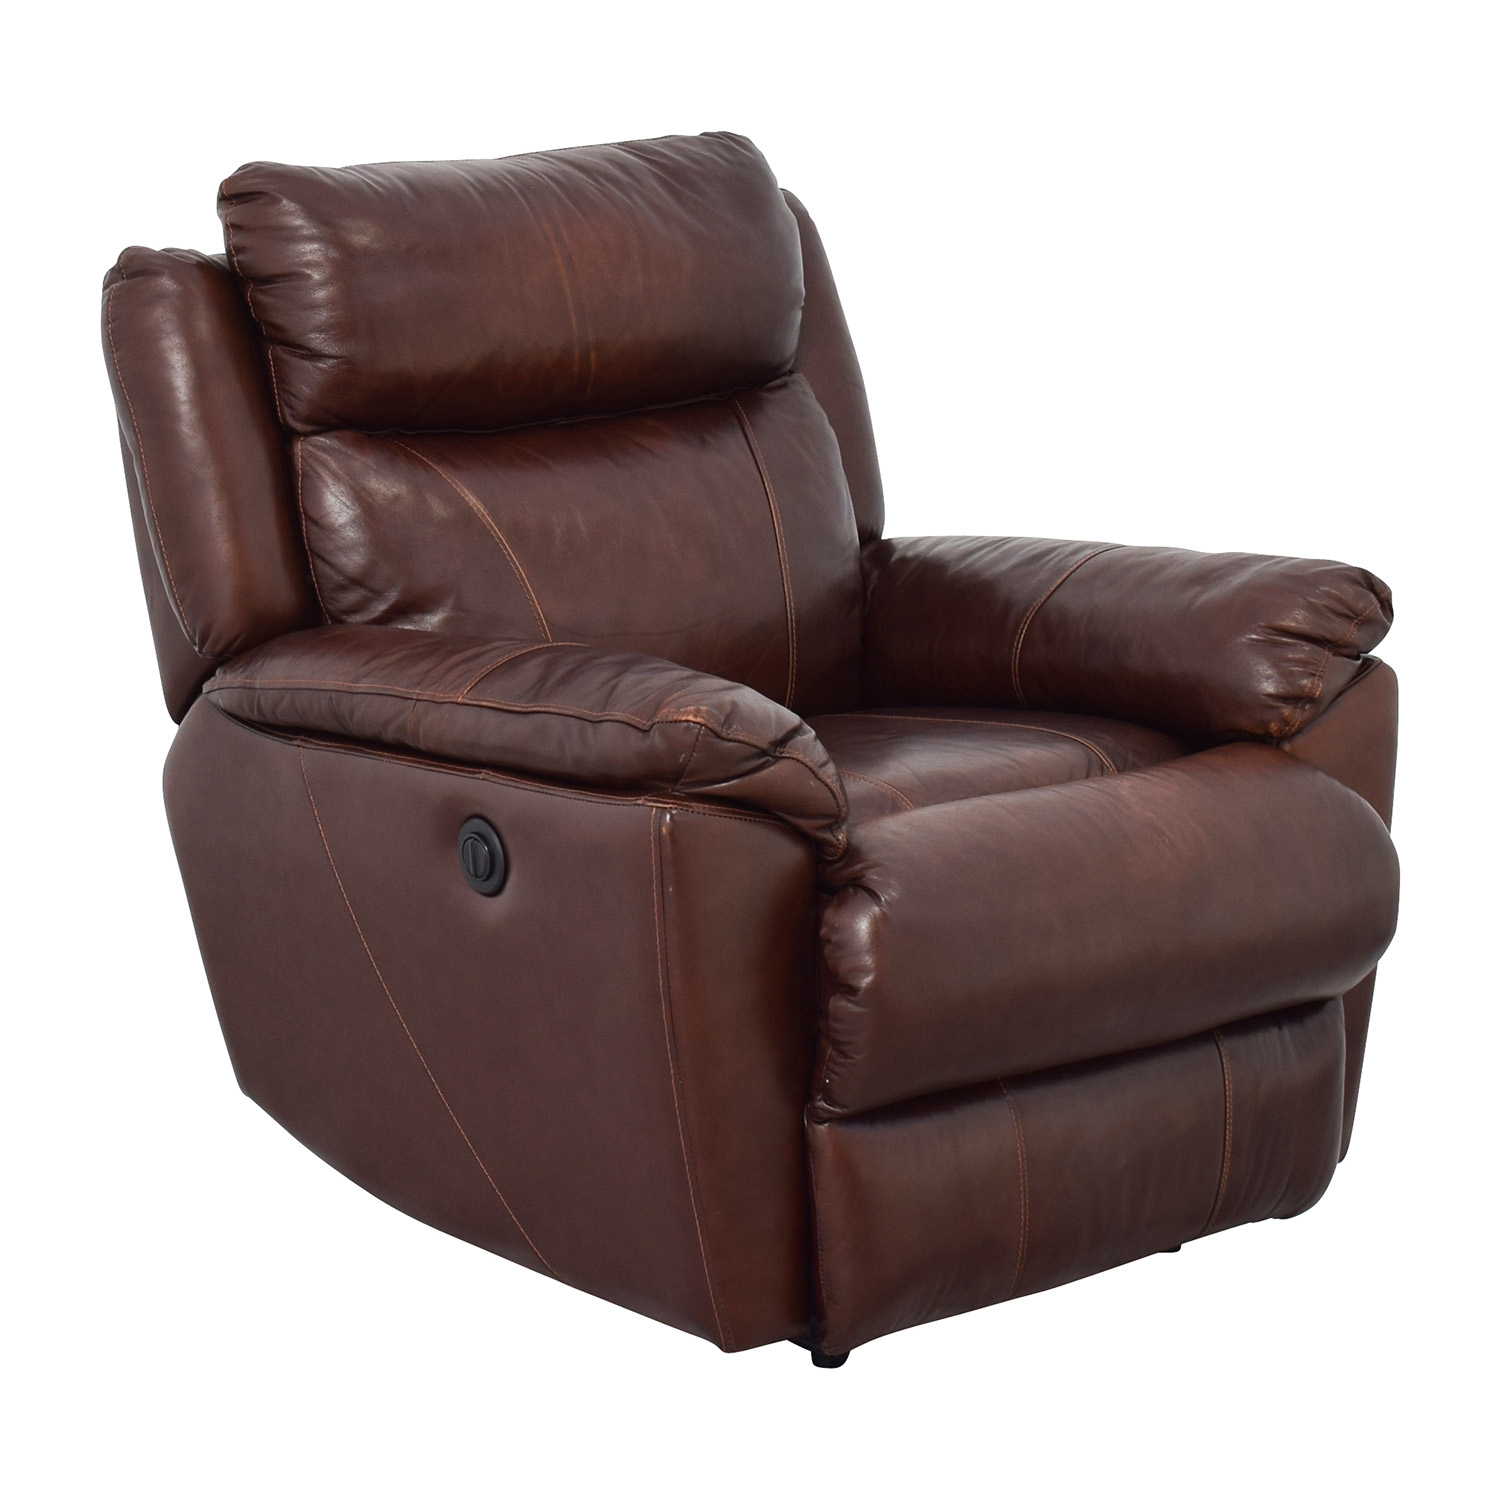 Macys Macys Brown Leather Power Recliner coupon